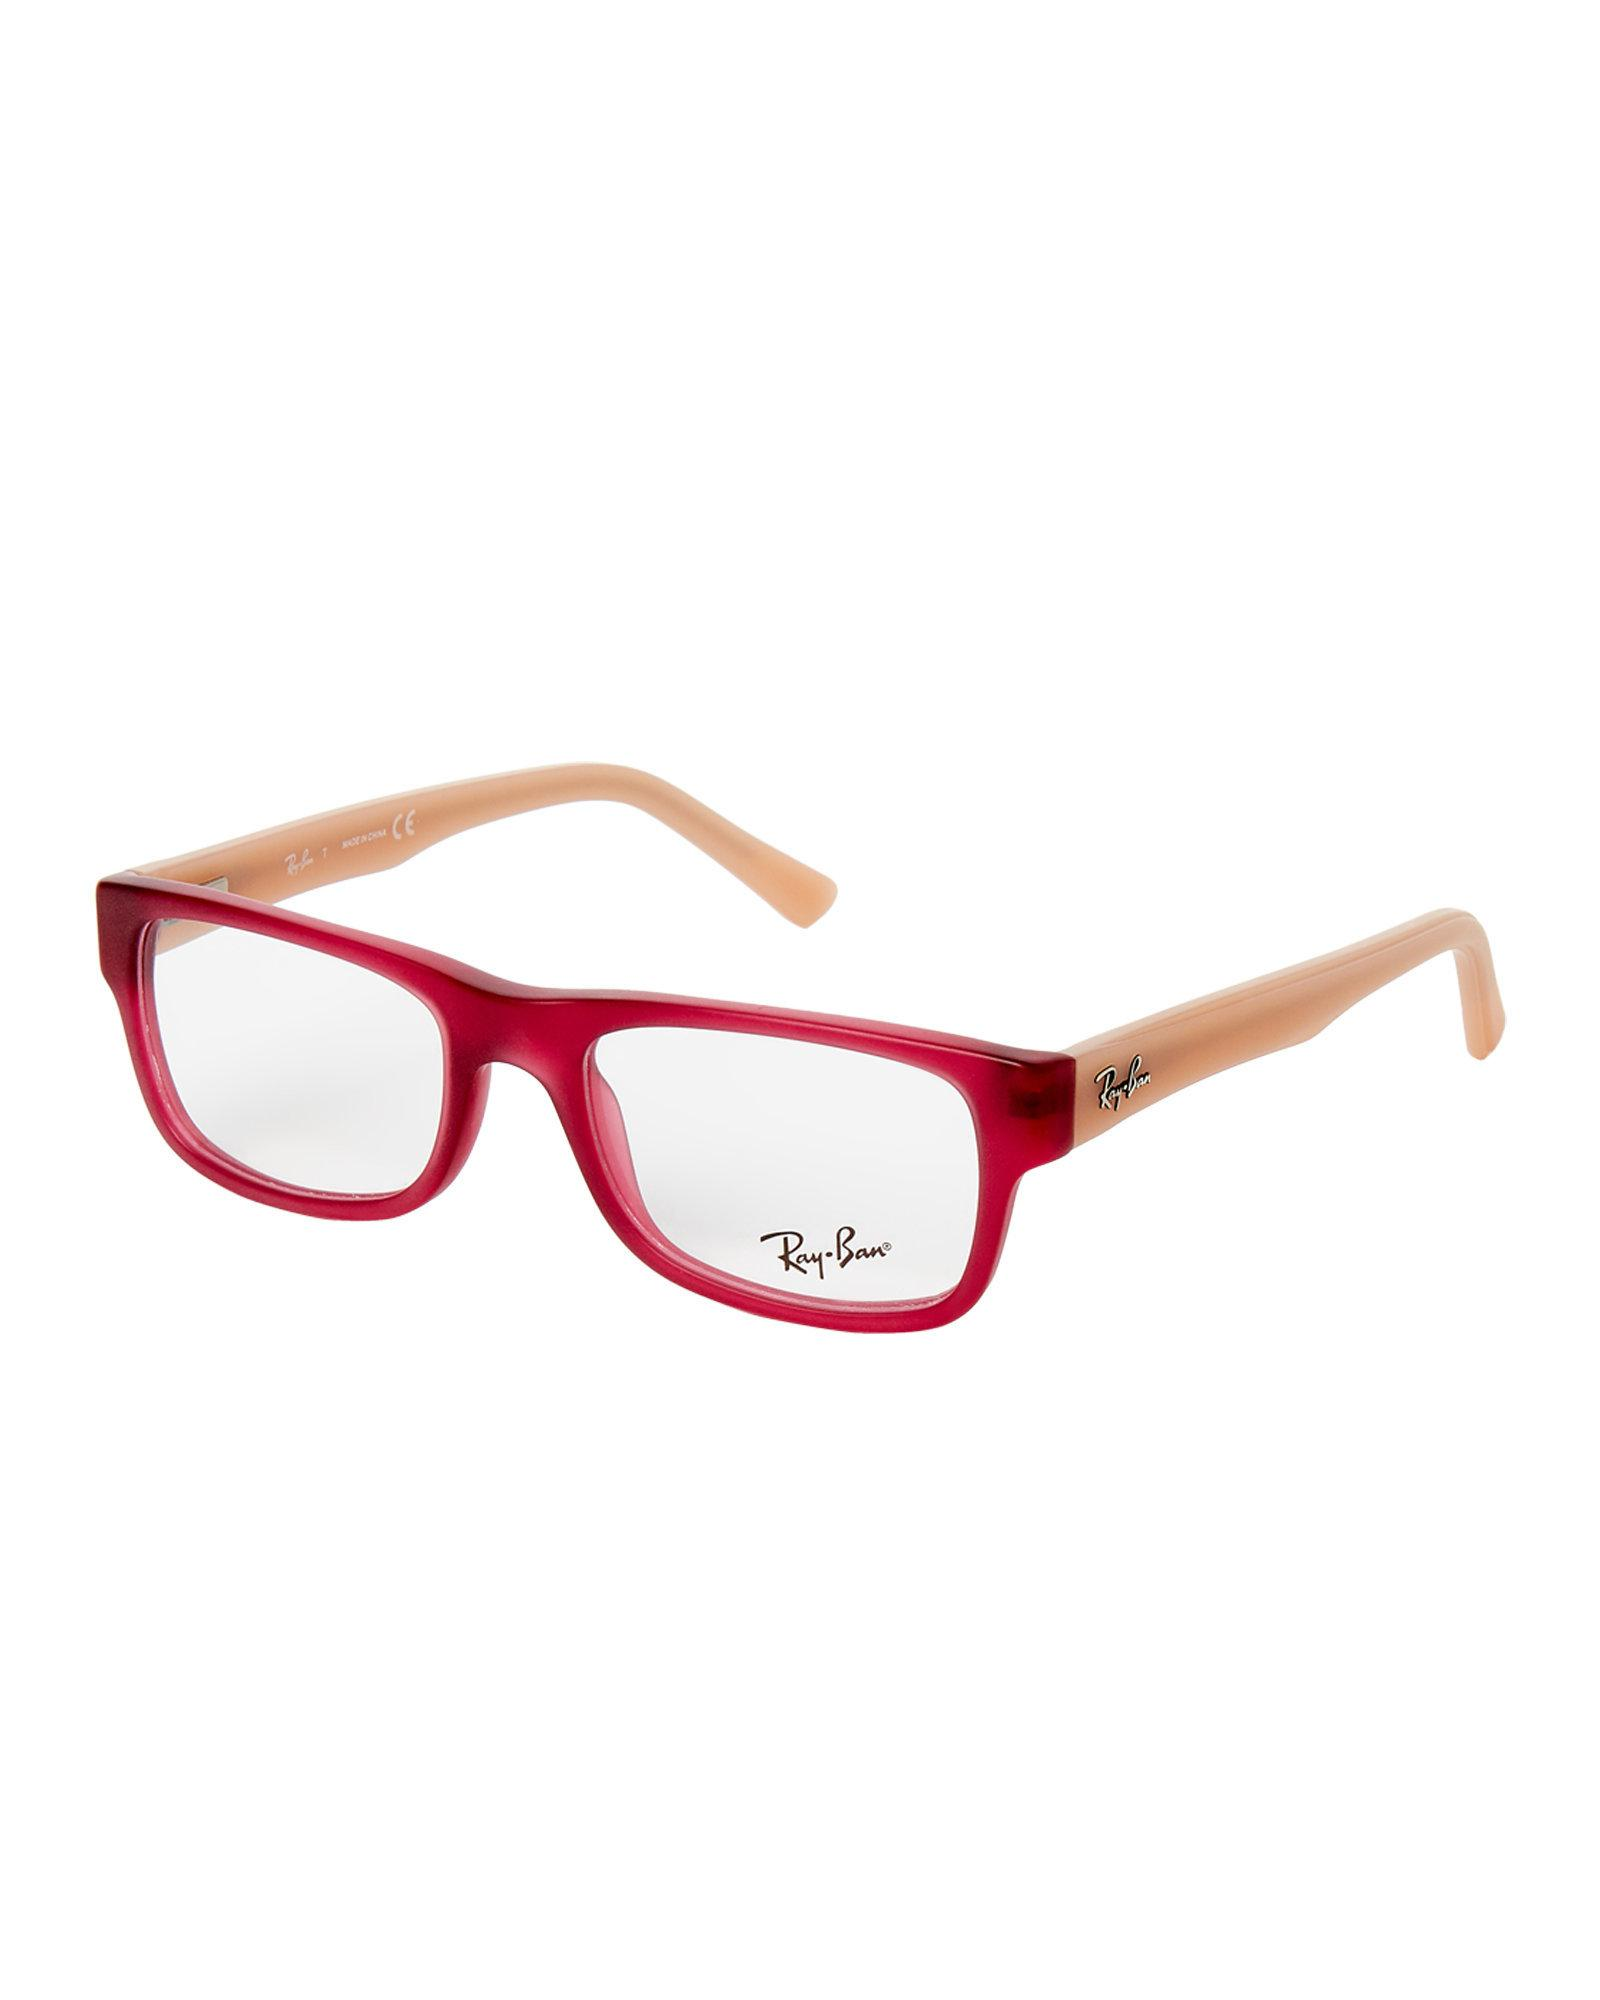 1dfab88438 Lyst - Ray-Ban Rb5268 Two-tone Rectangle Optical Frames in Red